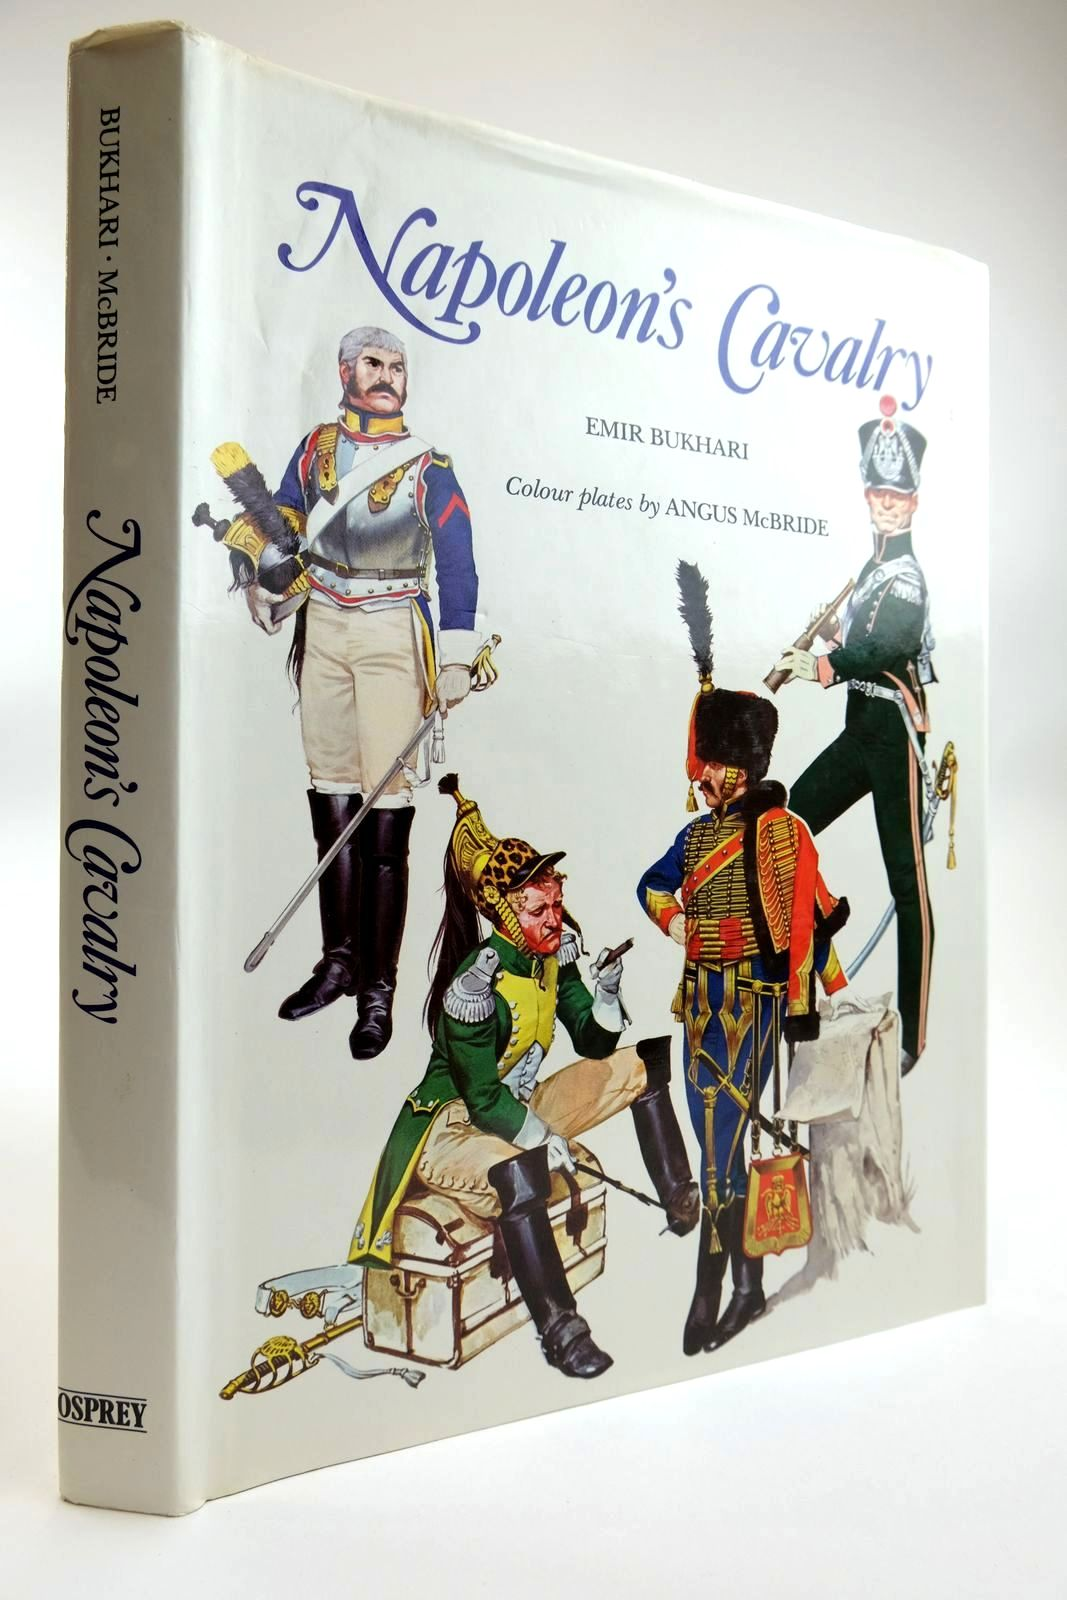 Photo of NAPOLEON'S CAVALRY written by Burkhari, Emir illustrated by McBride, Angus published by Osprey Publishing (STOCK CODE: 2133482)  for sale by Stella & Rose's Books